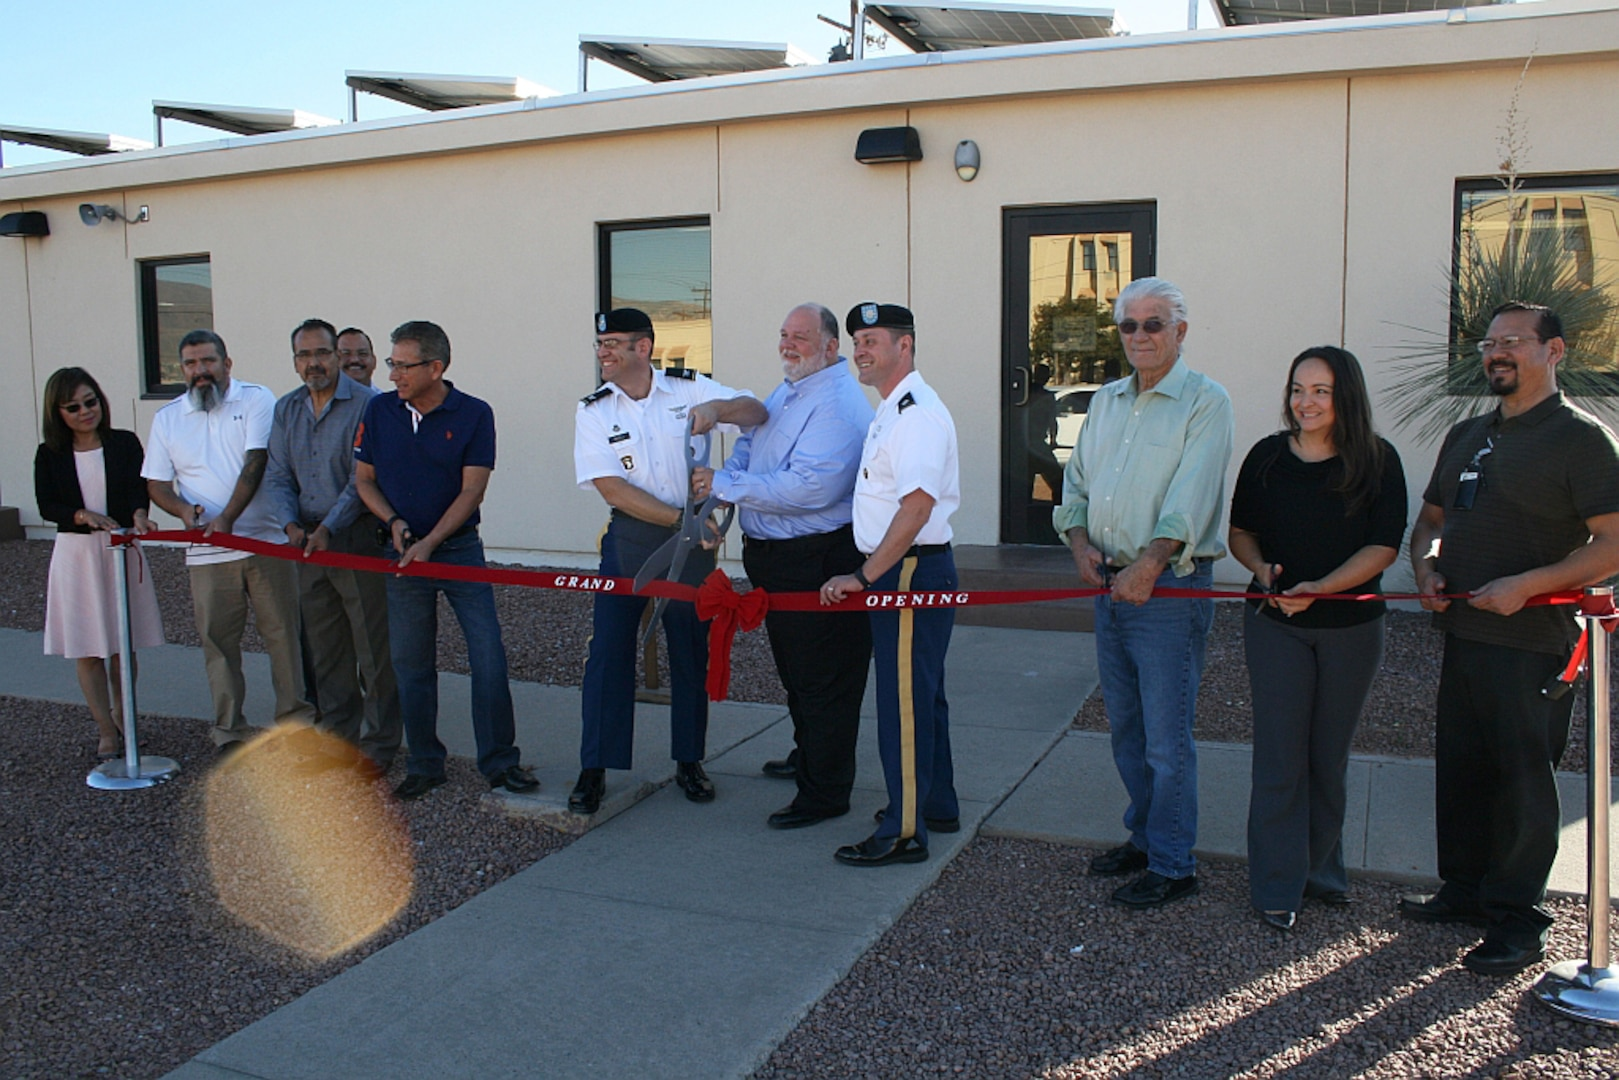 Army Col. Robert J. Miceli, Defense Contract Management Agency Phoenix commander; and Keith L. Duncan, DCMA Albuquerque - El Paso quality assurance team leader, cut the ribbon for the agency's new Fort Bliss office facility. Members of the DCMA El Paso team assisted in the ceremony and celebrated the grand opening of the new office space. From left, Kim Birch, Homero U. Ramos, Eduardo Luera, Jesus Barrios, José G. Arrieta, Miceli, Duncan, Army Lt. Col.  John S. Pires, James D. Avant, Maria Ludwig and Alex Luna. (DCMA photo by Jay Maitland, DCMA Albuquerque - El Paso)